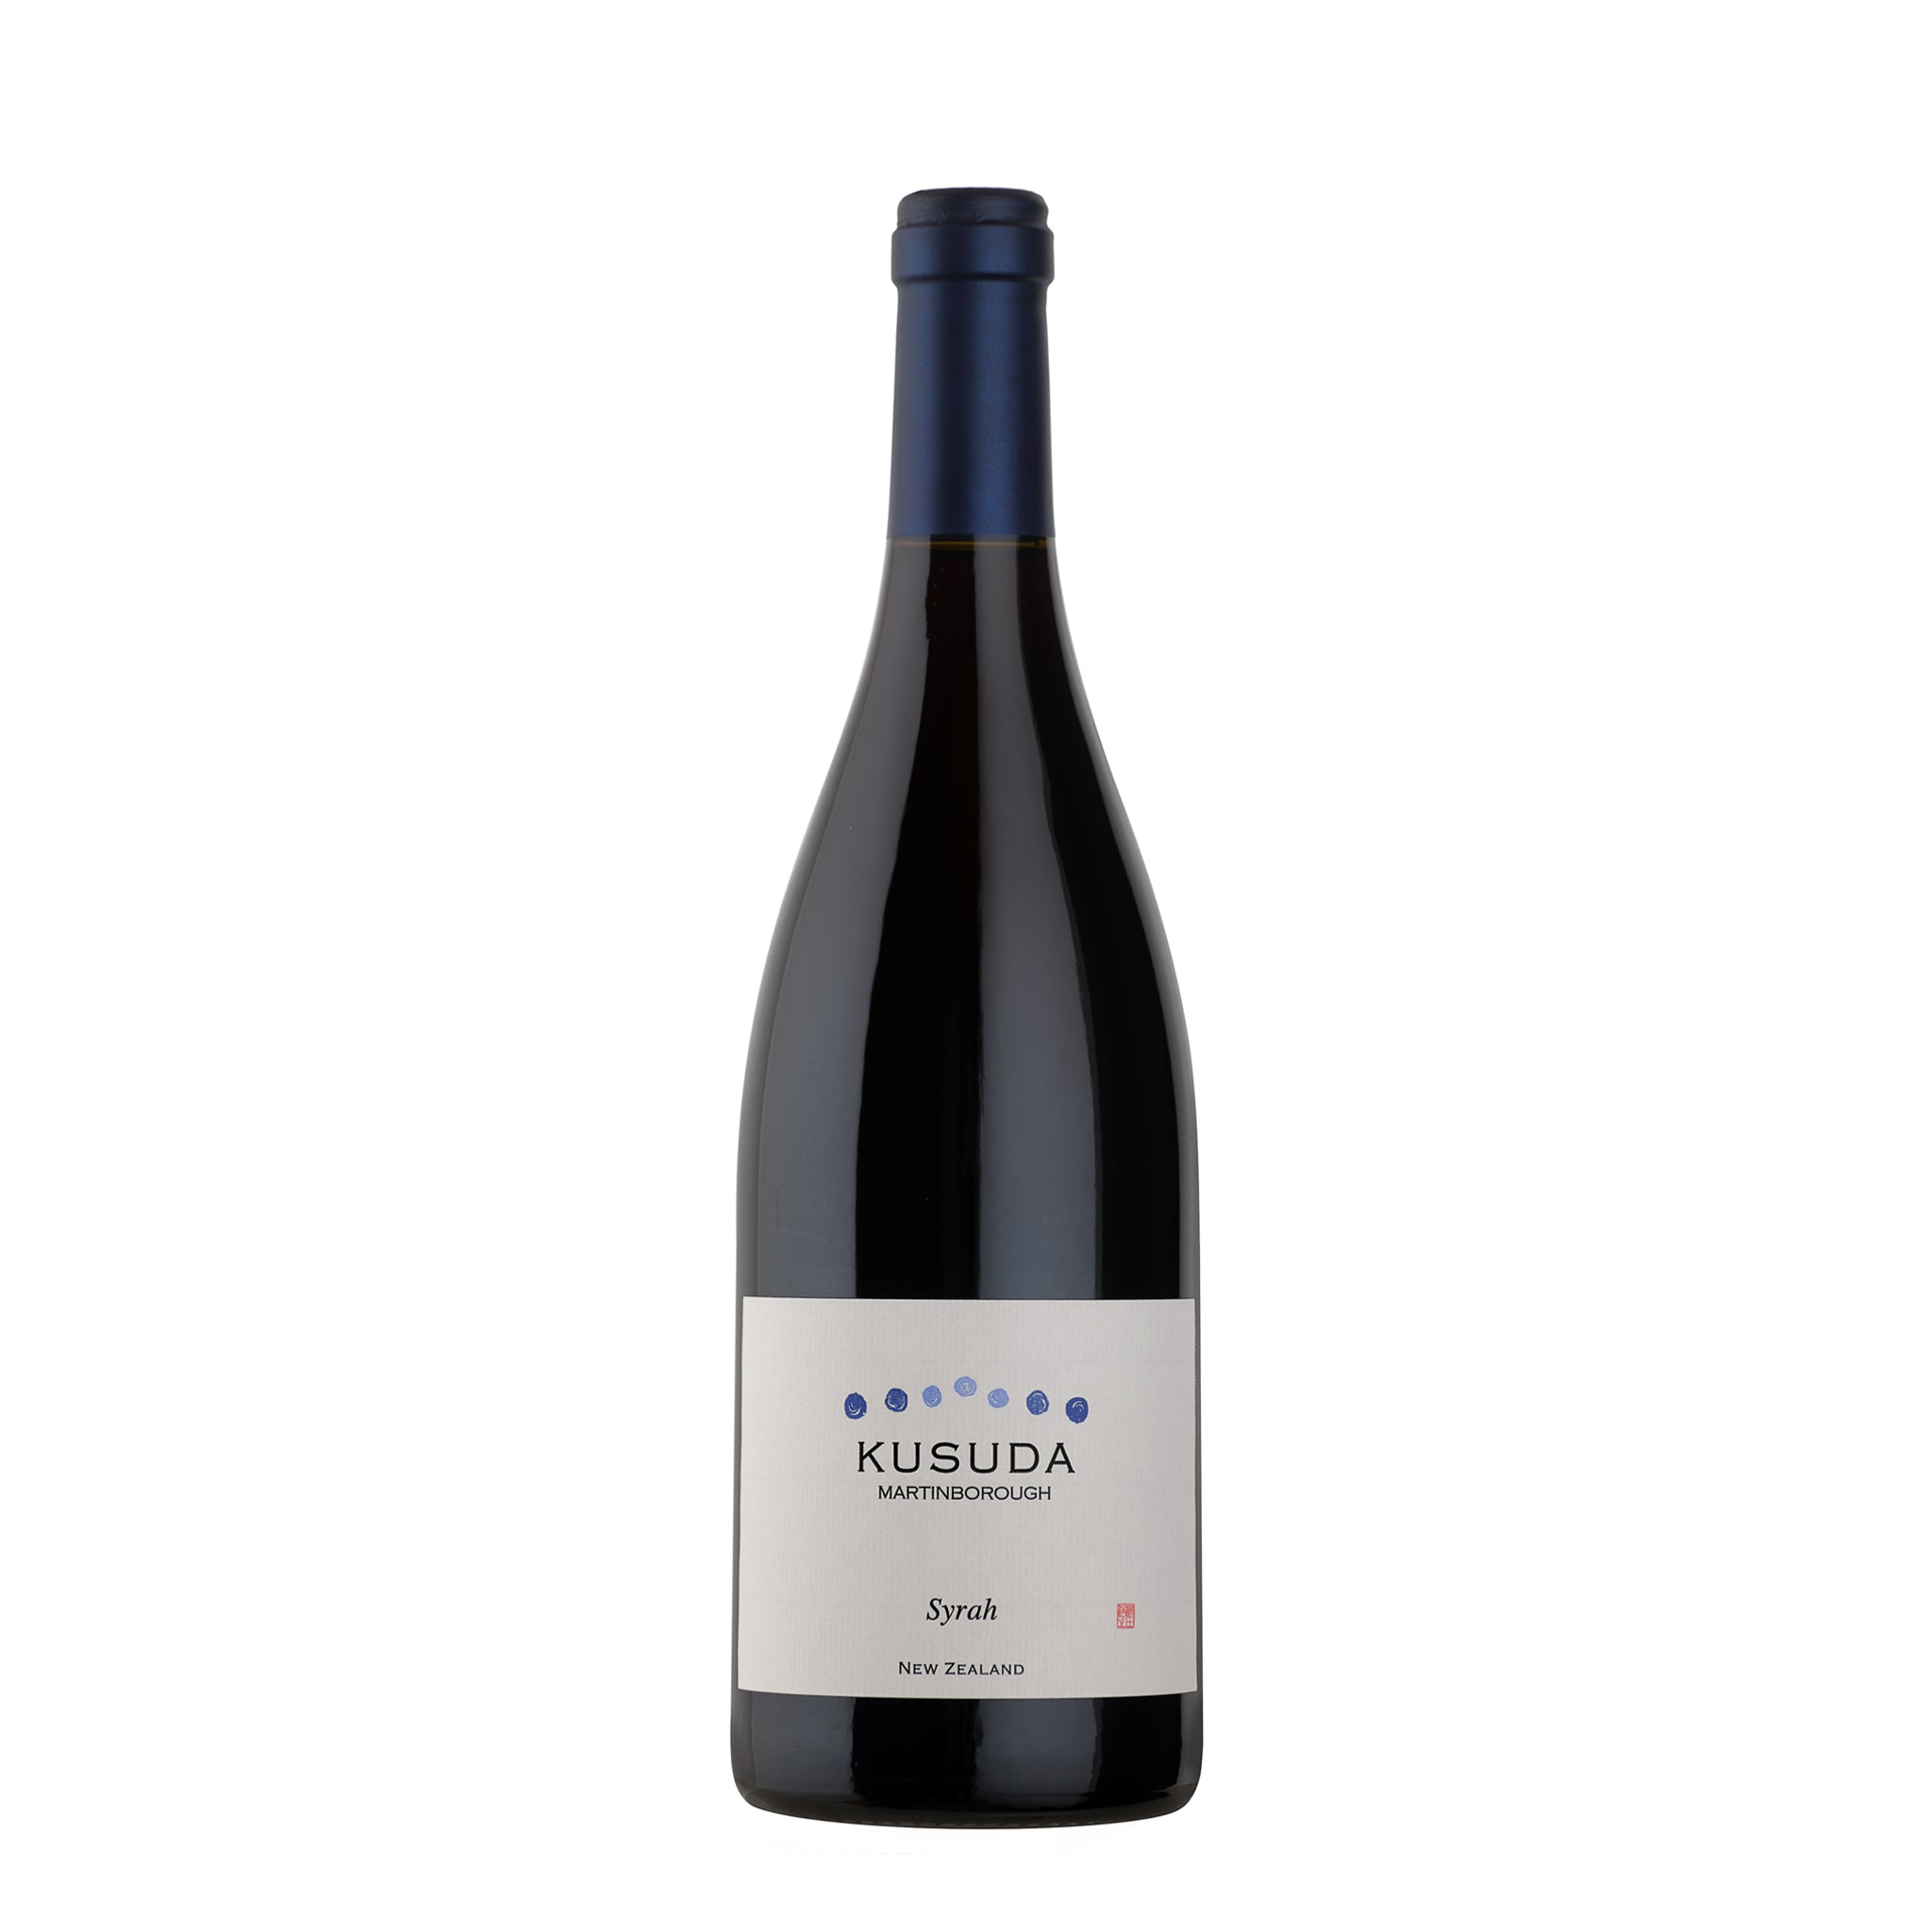 Kusuda Martinborough Syrah 2010 750ml